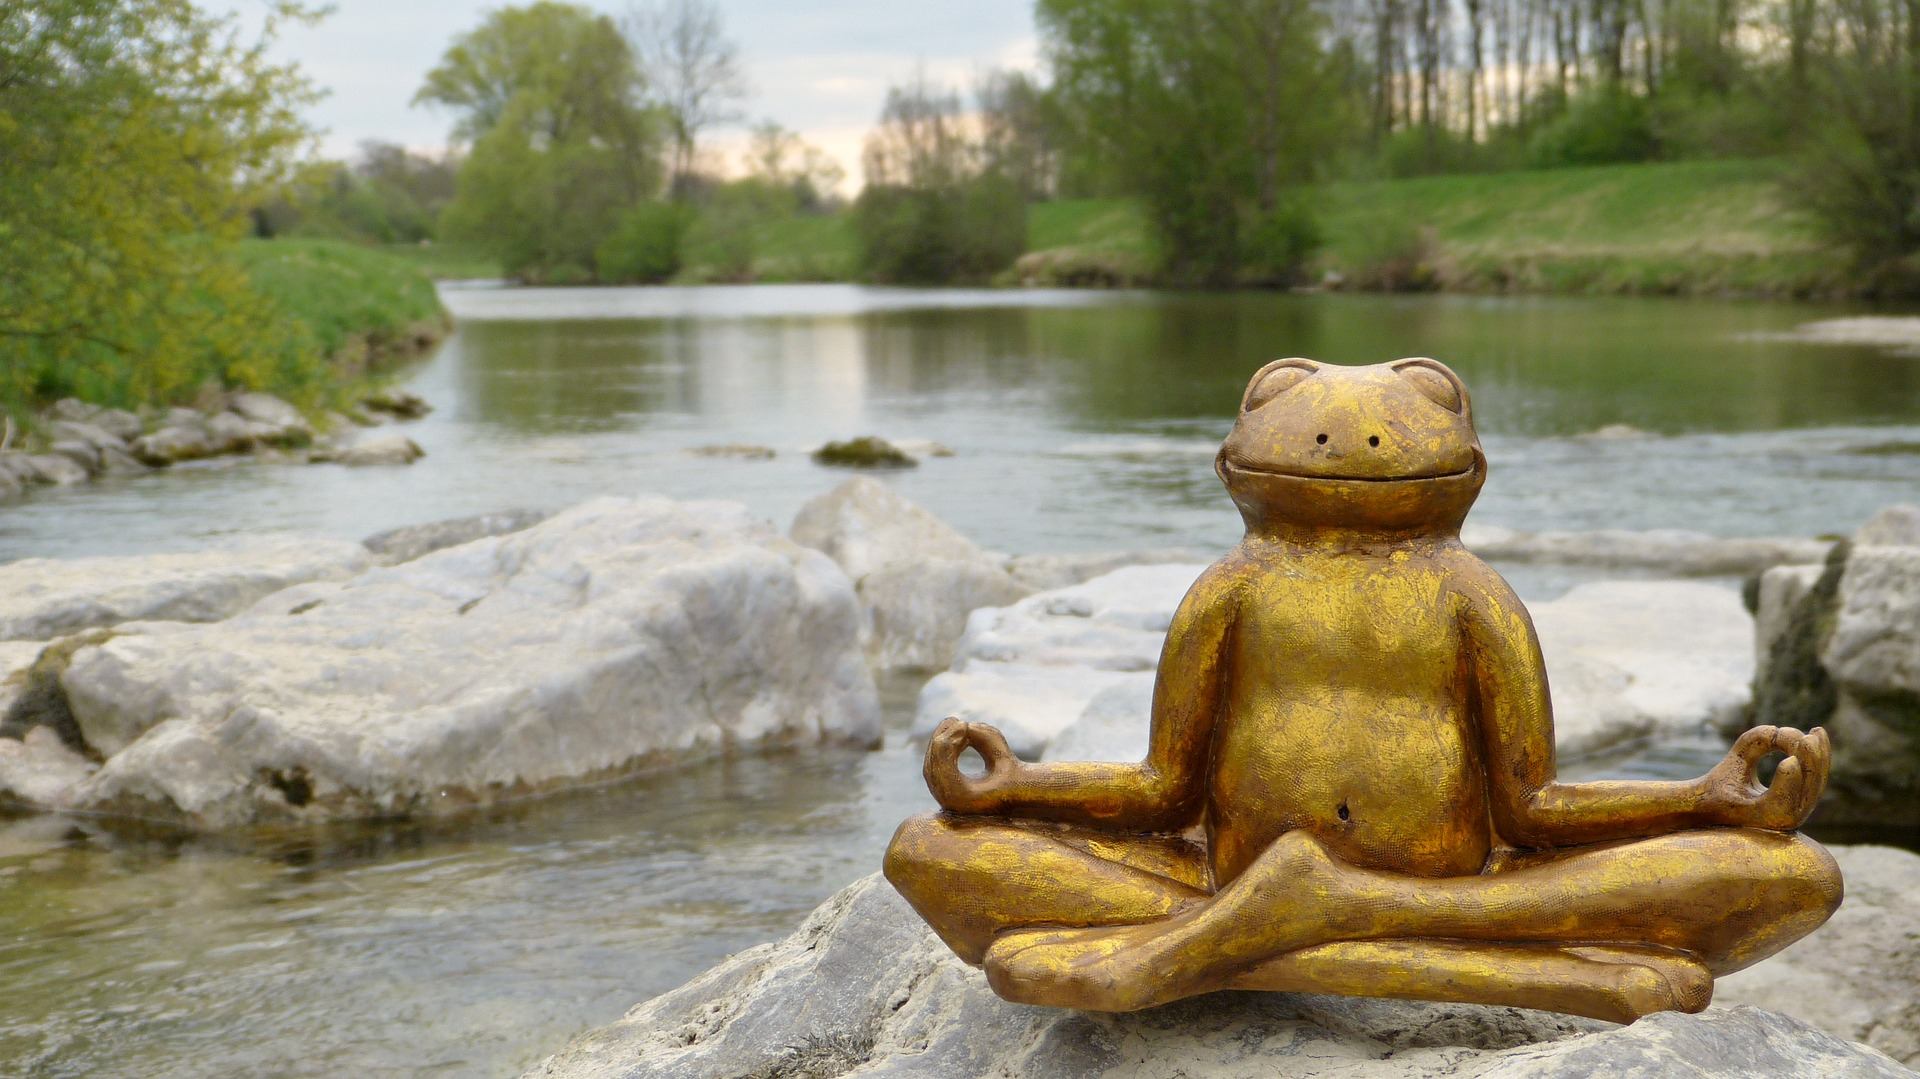 water and frog meditating